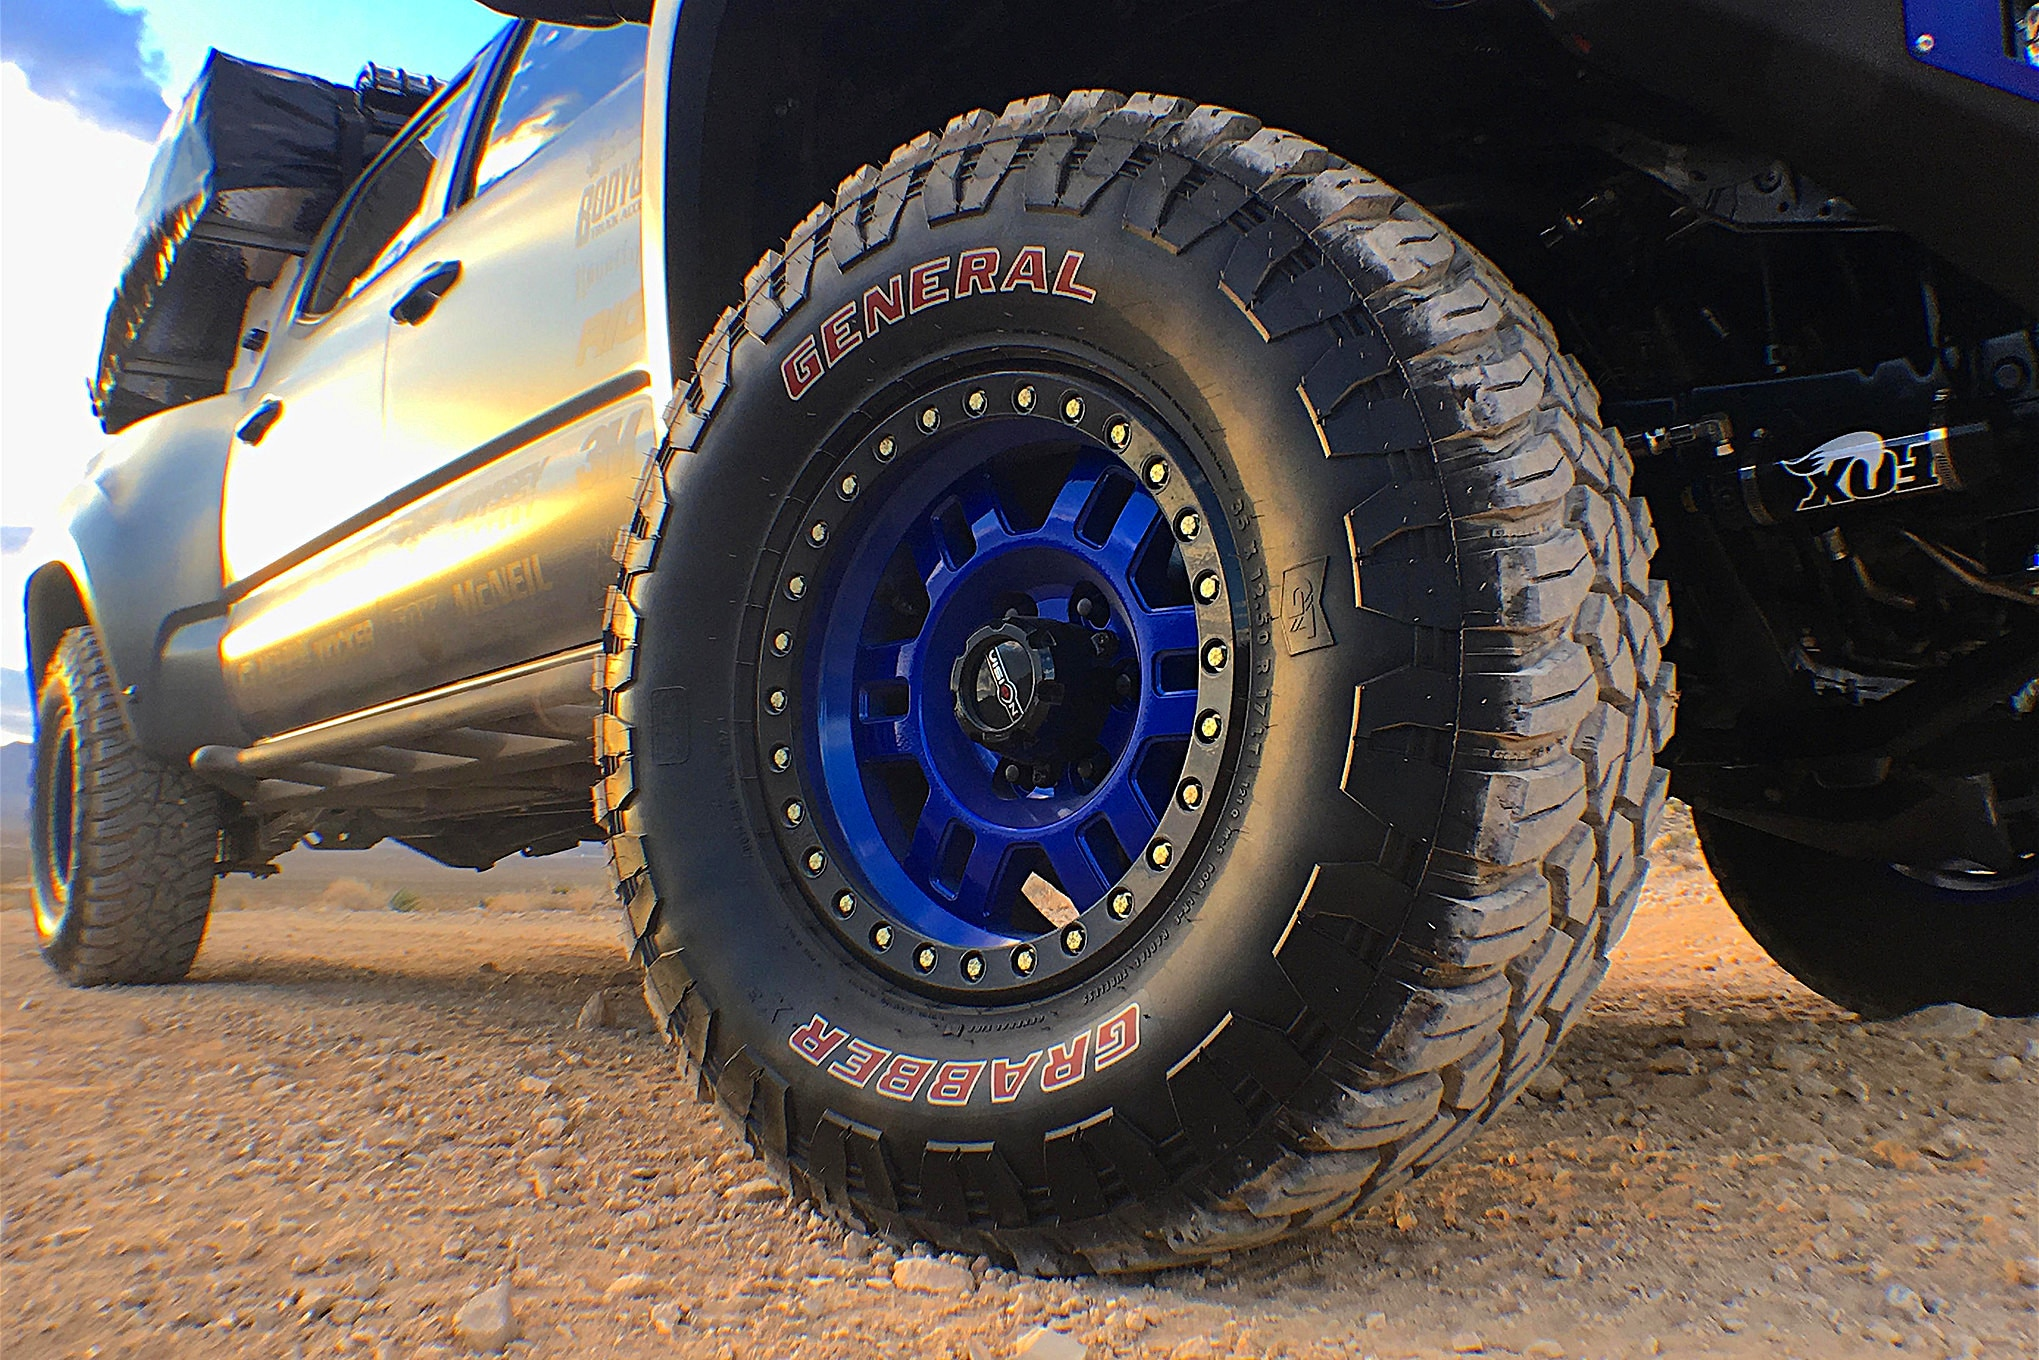 It's tough out there, so Wise went even tougher with 35-inch General Grabber tires that have been mounted on Vision beadlock wheels.